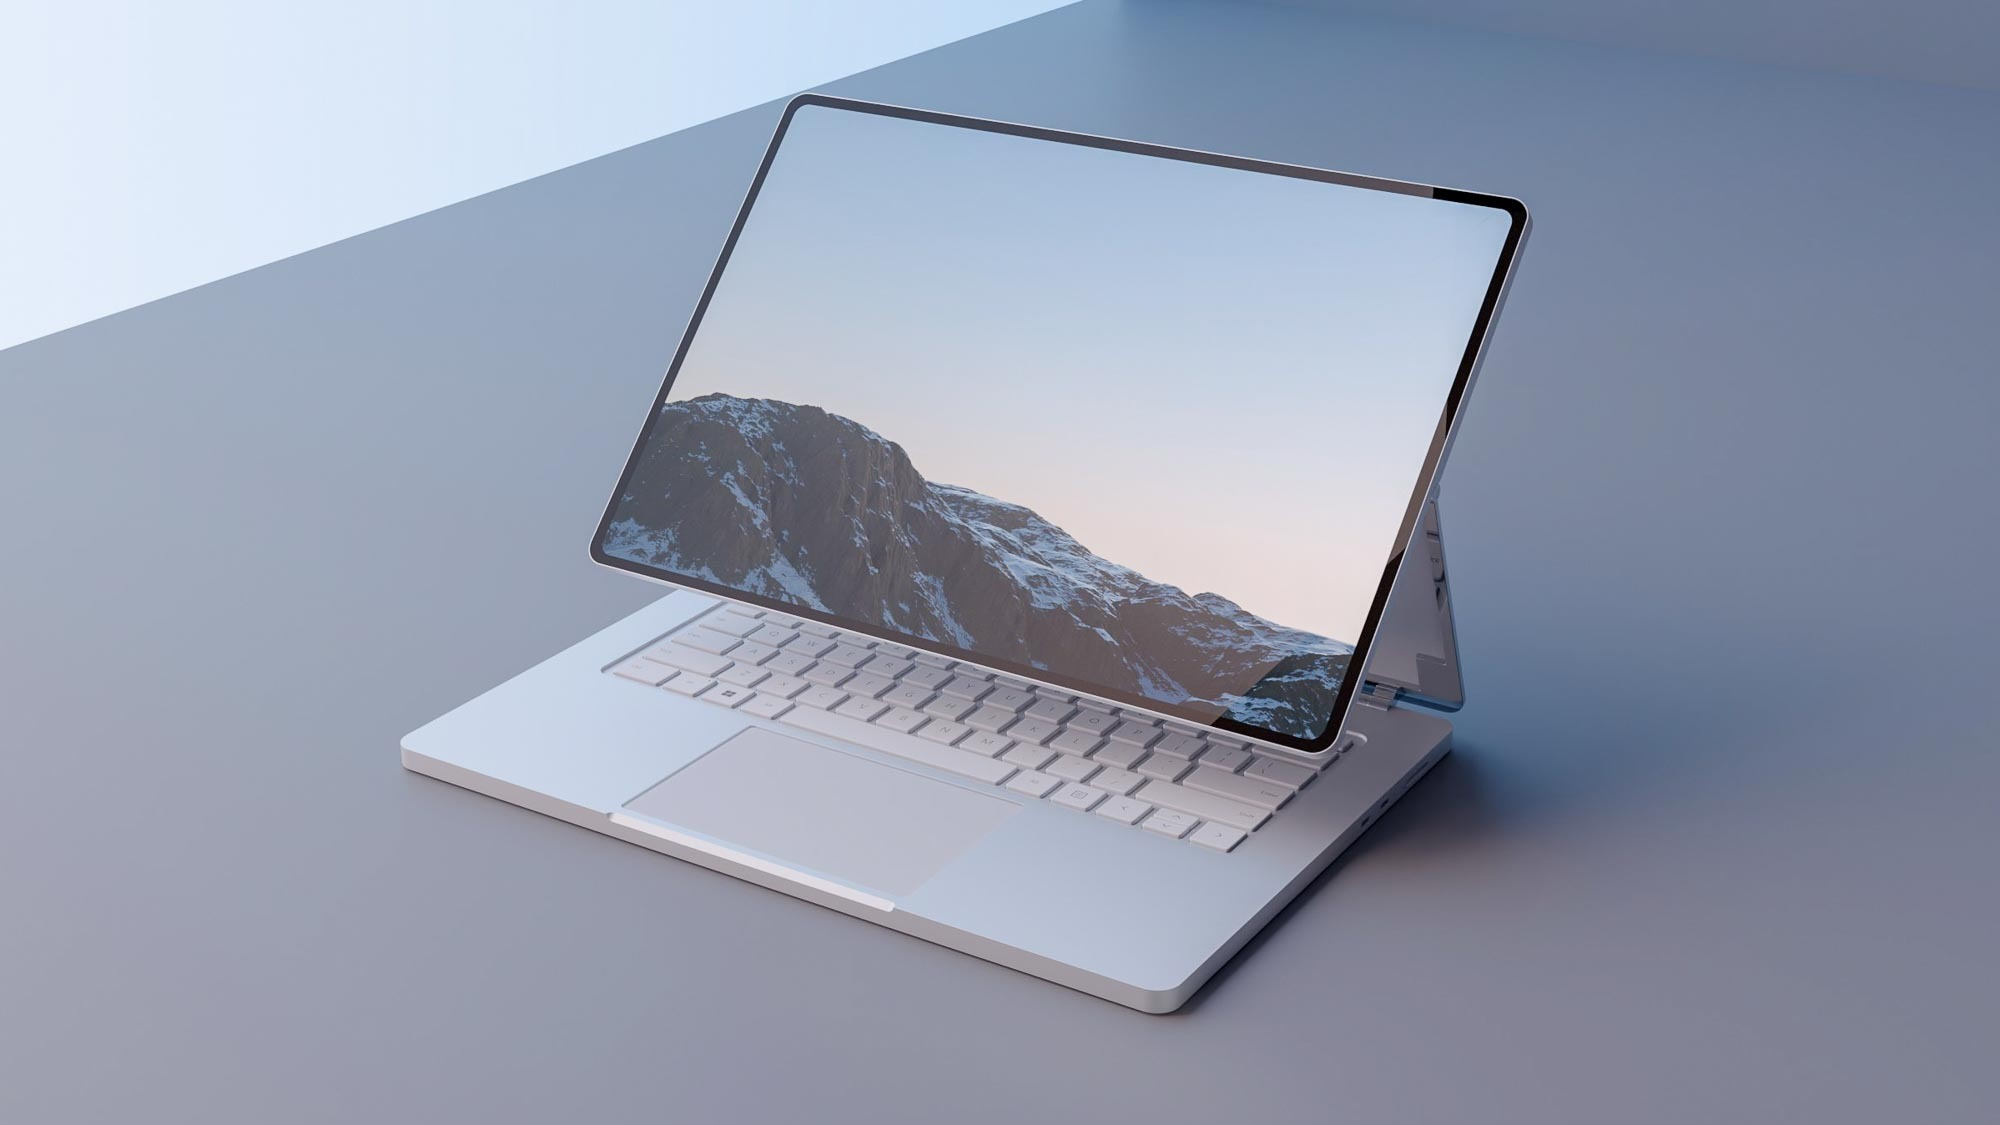 surface book 4 coming by Microsoft at event